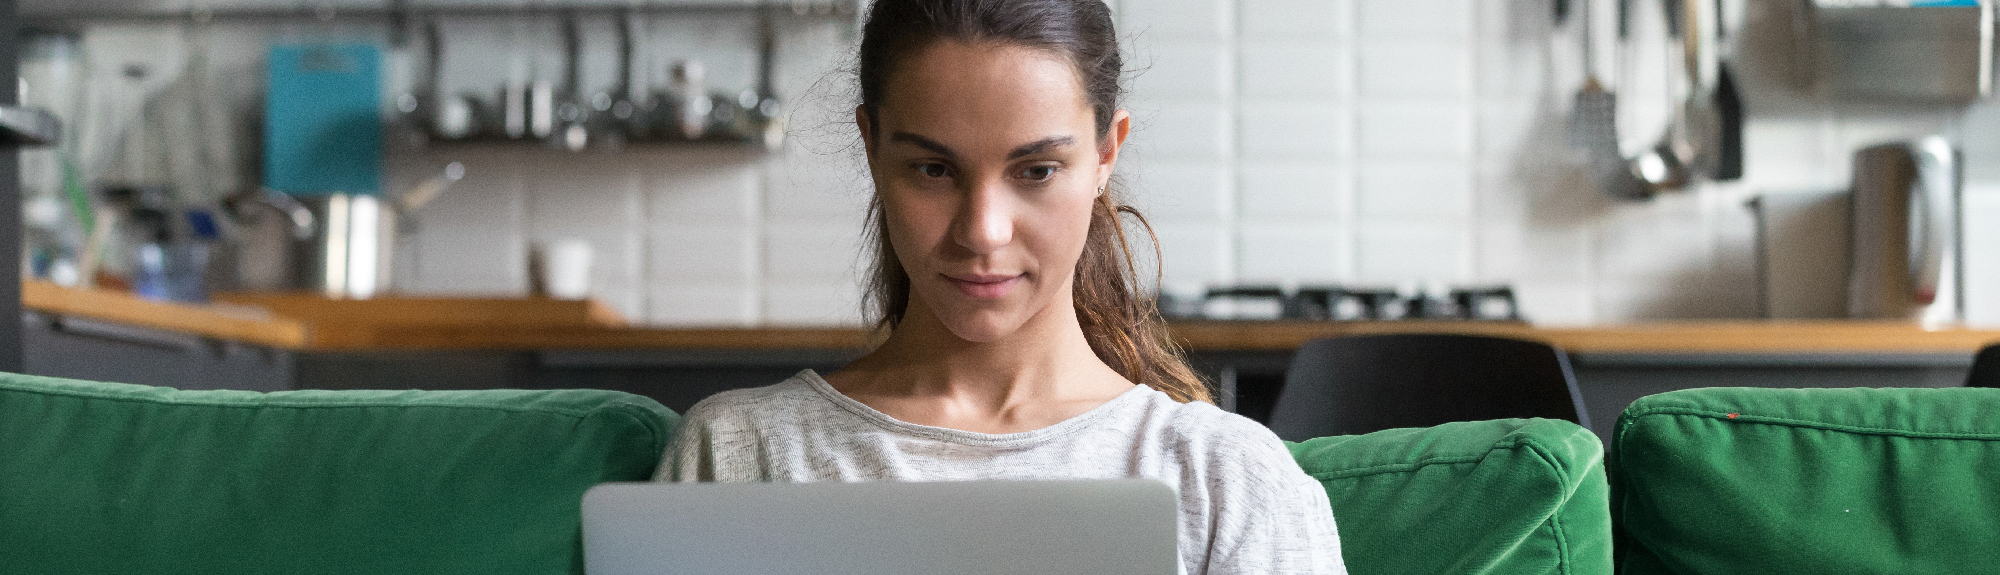 Woman reading Hot Issues Blog on computer